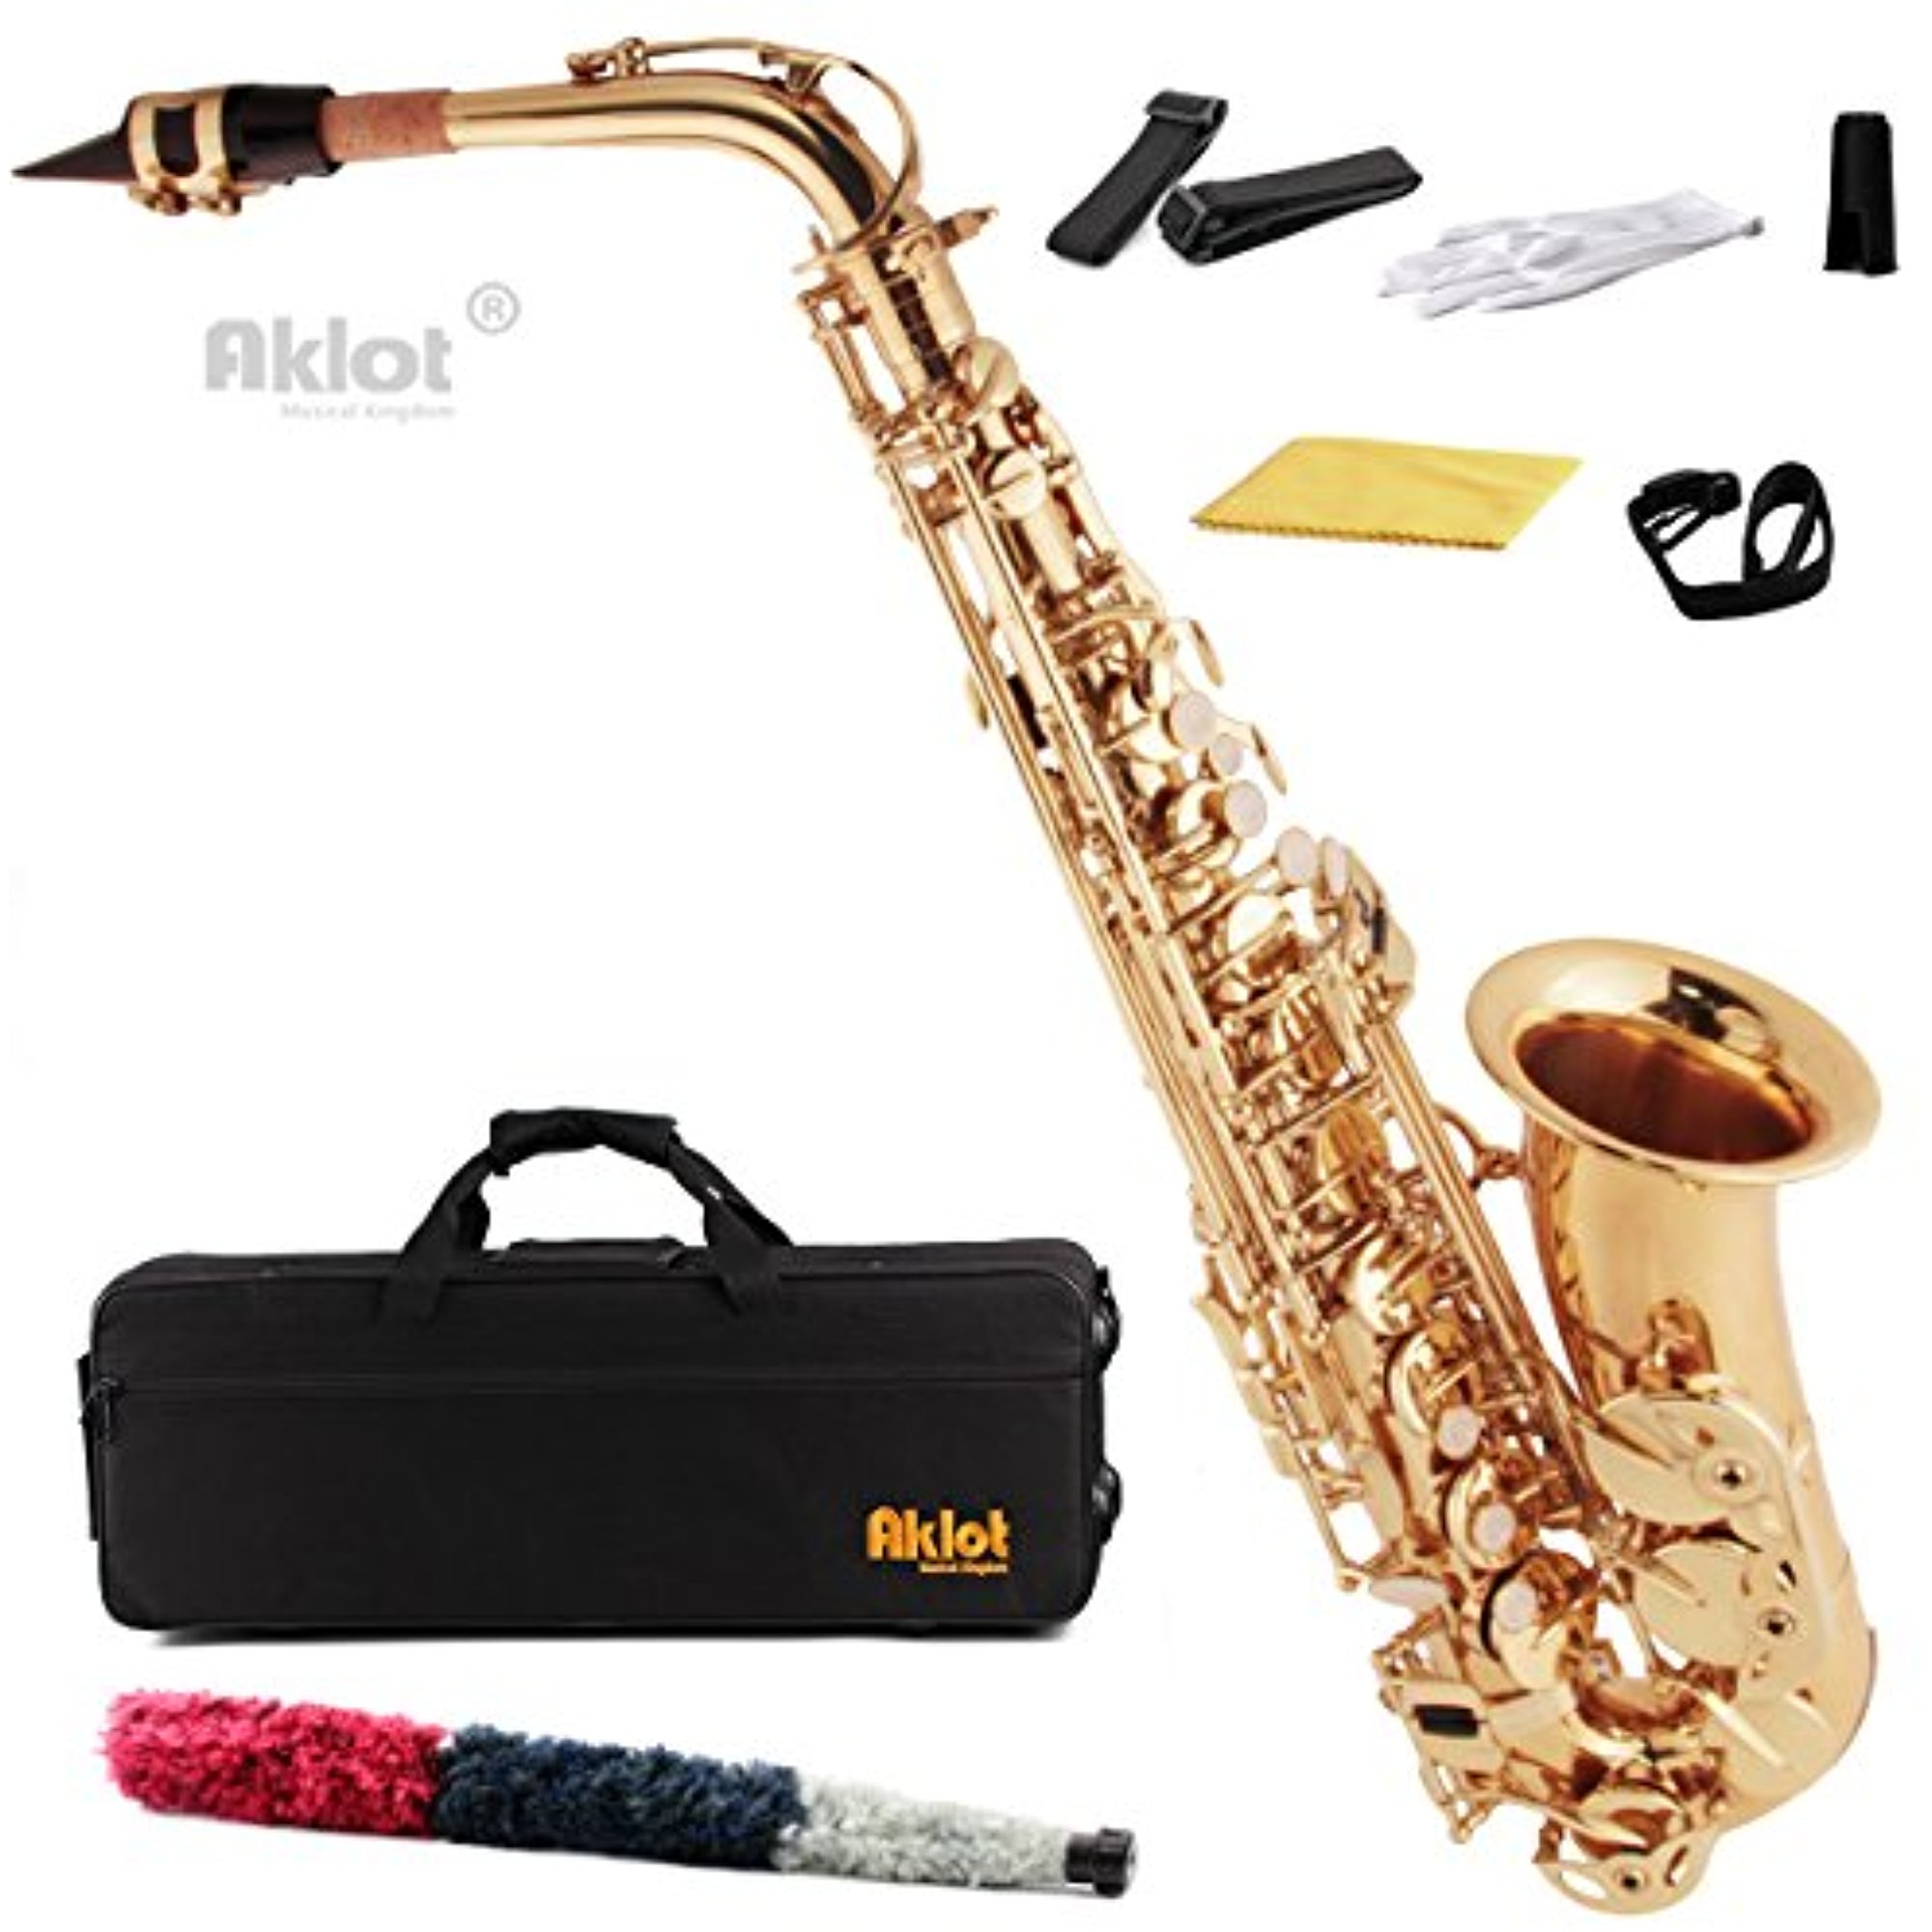 Aklot Eb Alto Saxophone Sax Gold Lacquered Brass Body with Mouthpiece Reed and Case by Kmise